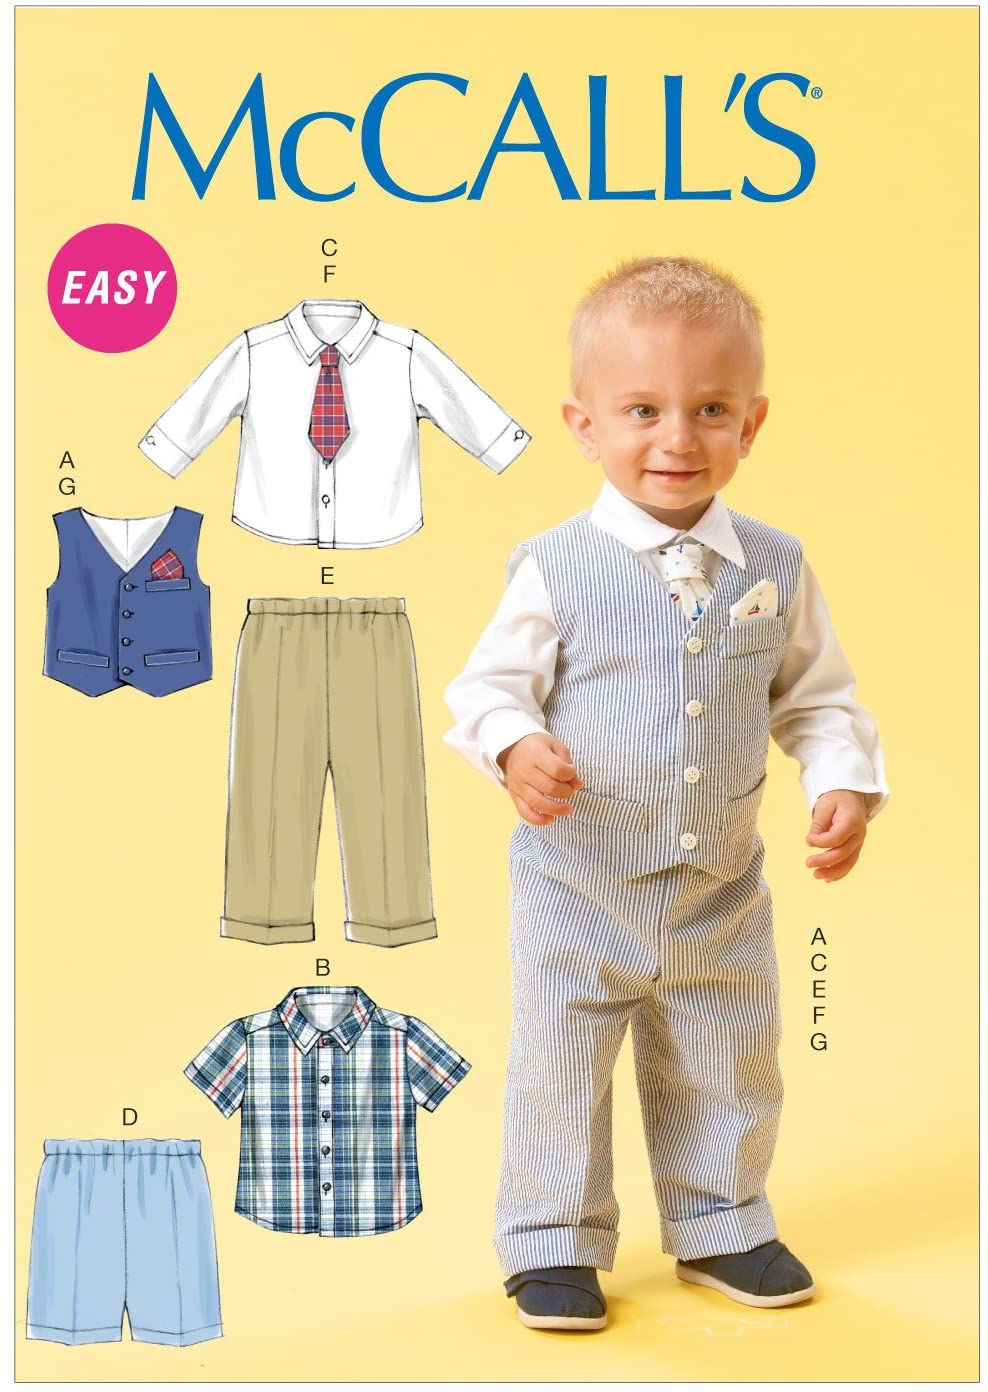 McCall Pattern Company M6873 Infants Vest, Shirt, Shorts, Pants, Tie and Pocket Square Sewing Template, Size YA5